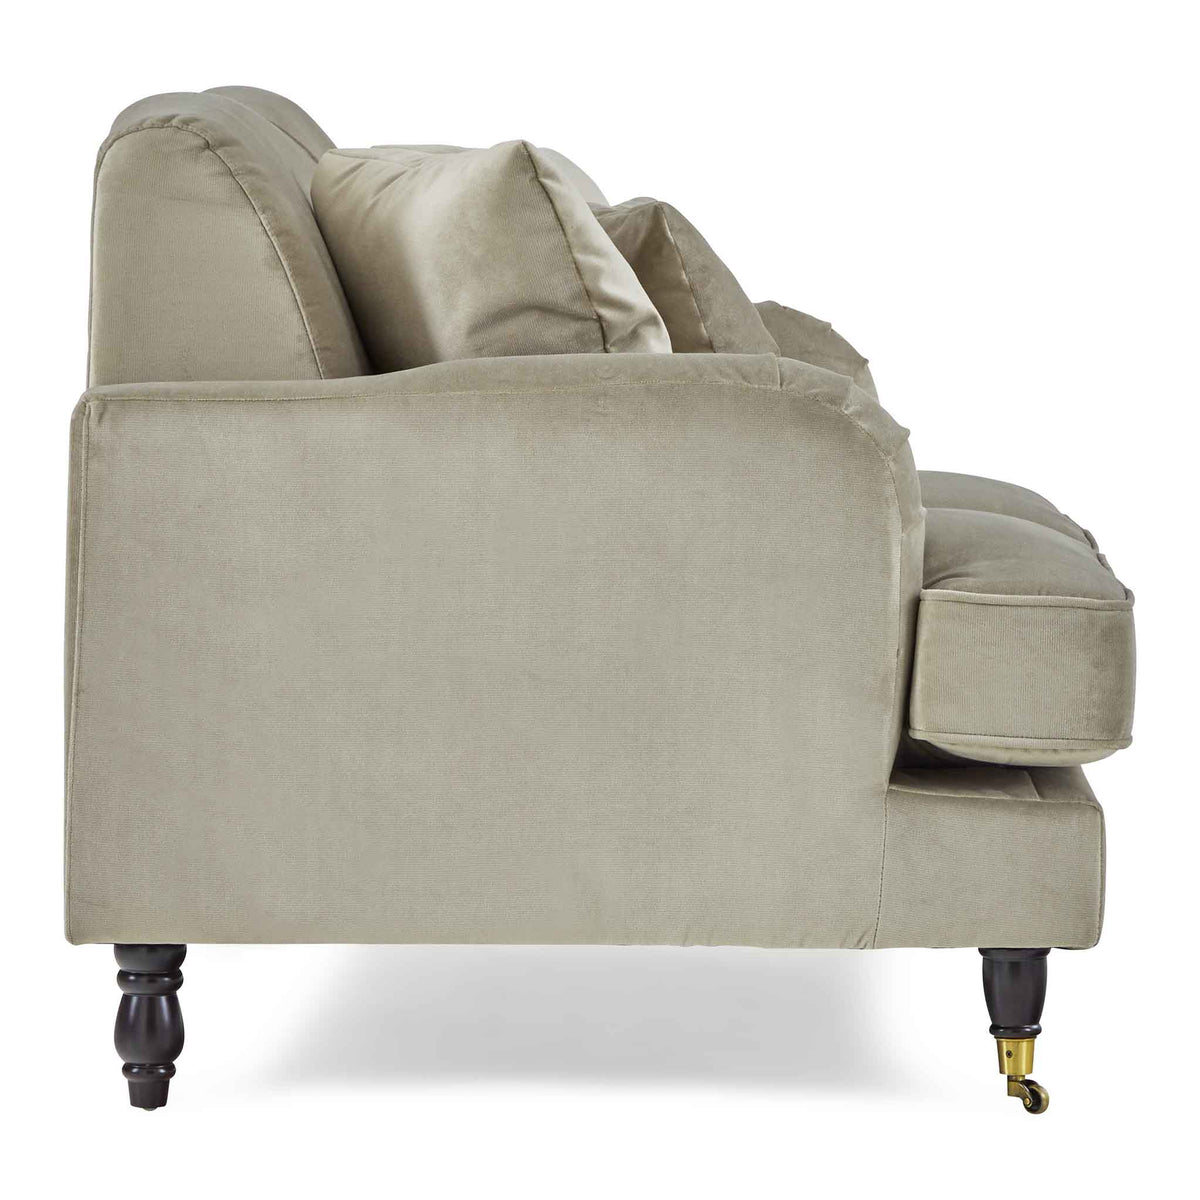 side view of the Piper Putty Velvet 2 Seater Sofa from Roseland Furniture